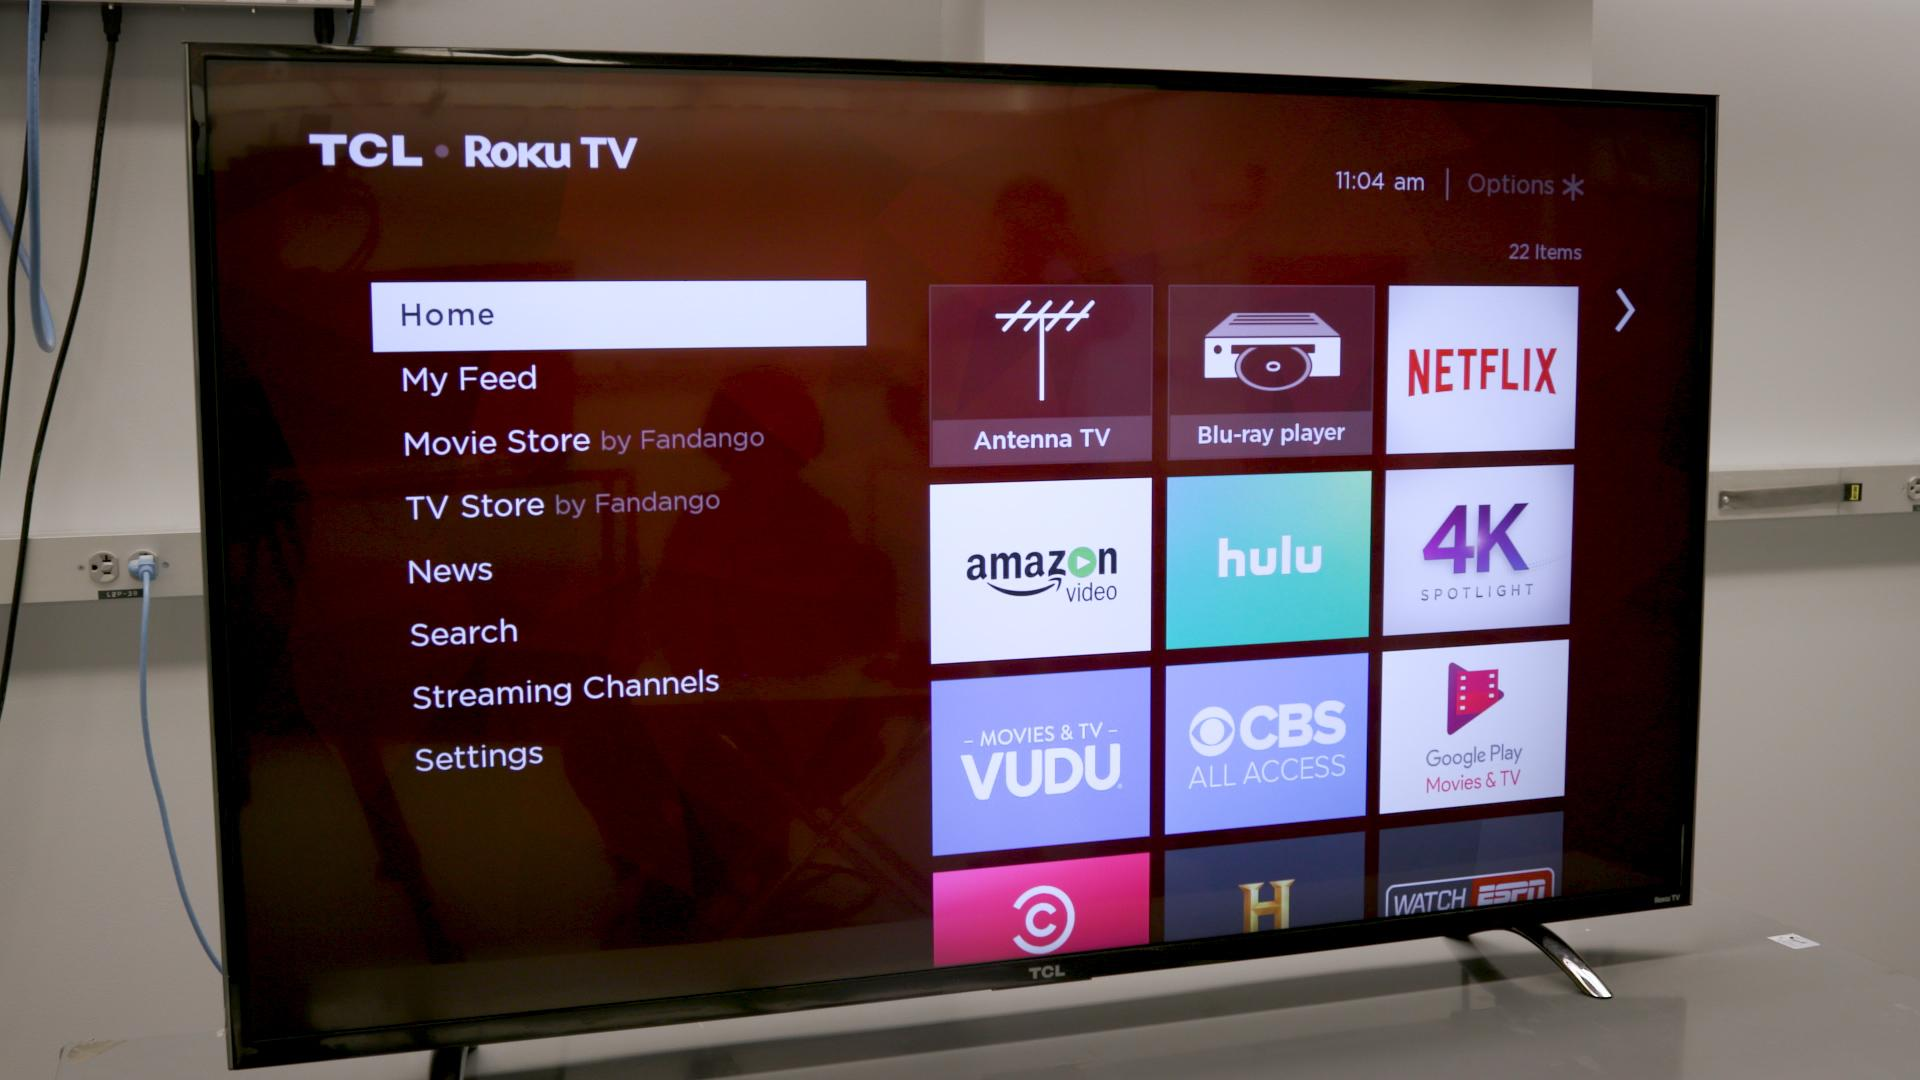 Samsung and Roku Smart TVs Vulnerable to Hacking - Consumer Reports